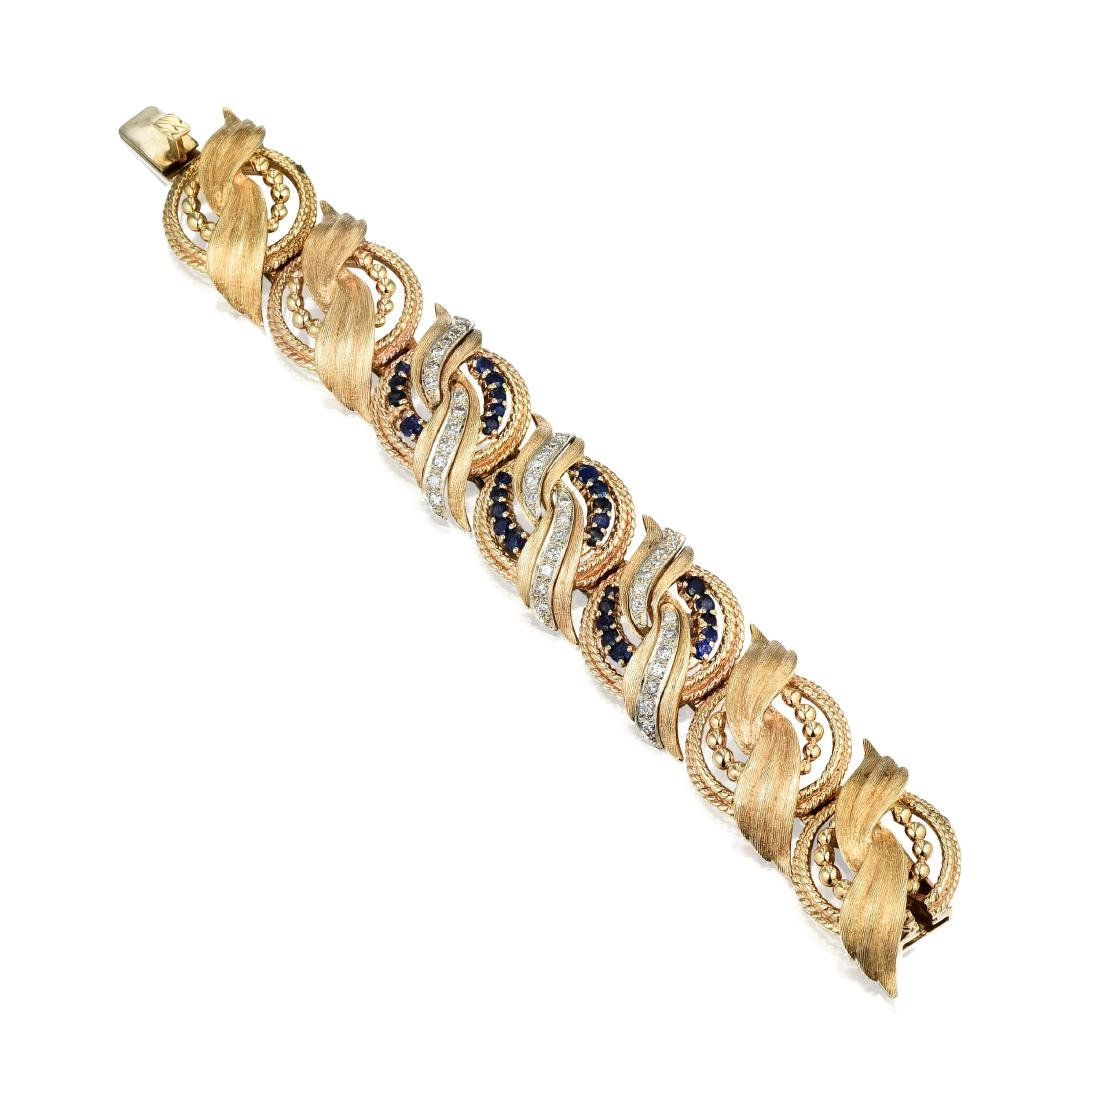 A 14K Gold, Sapphire and Diamond Bracelet - 2